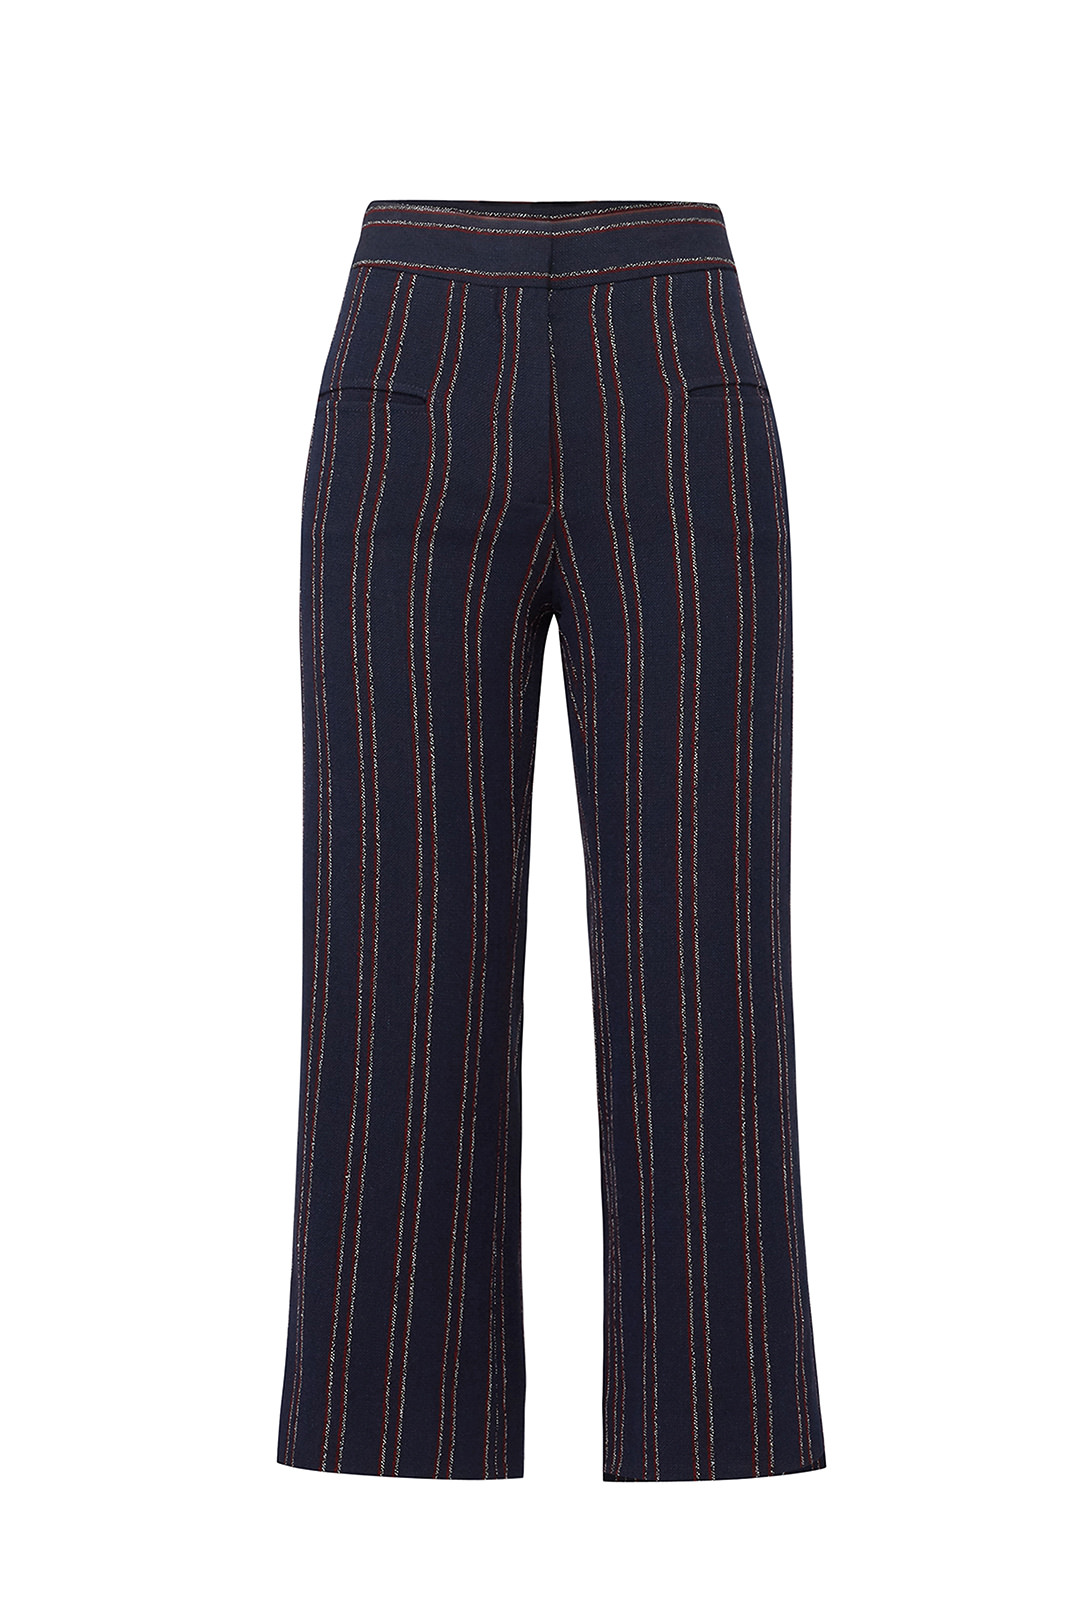 porter-stripe-pants